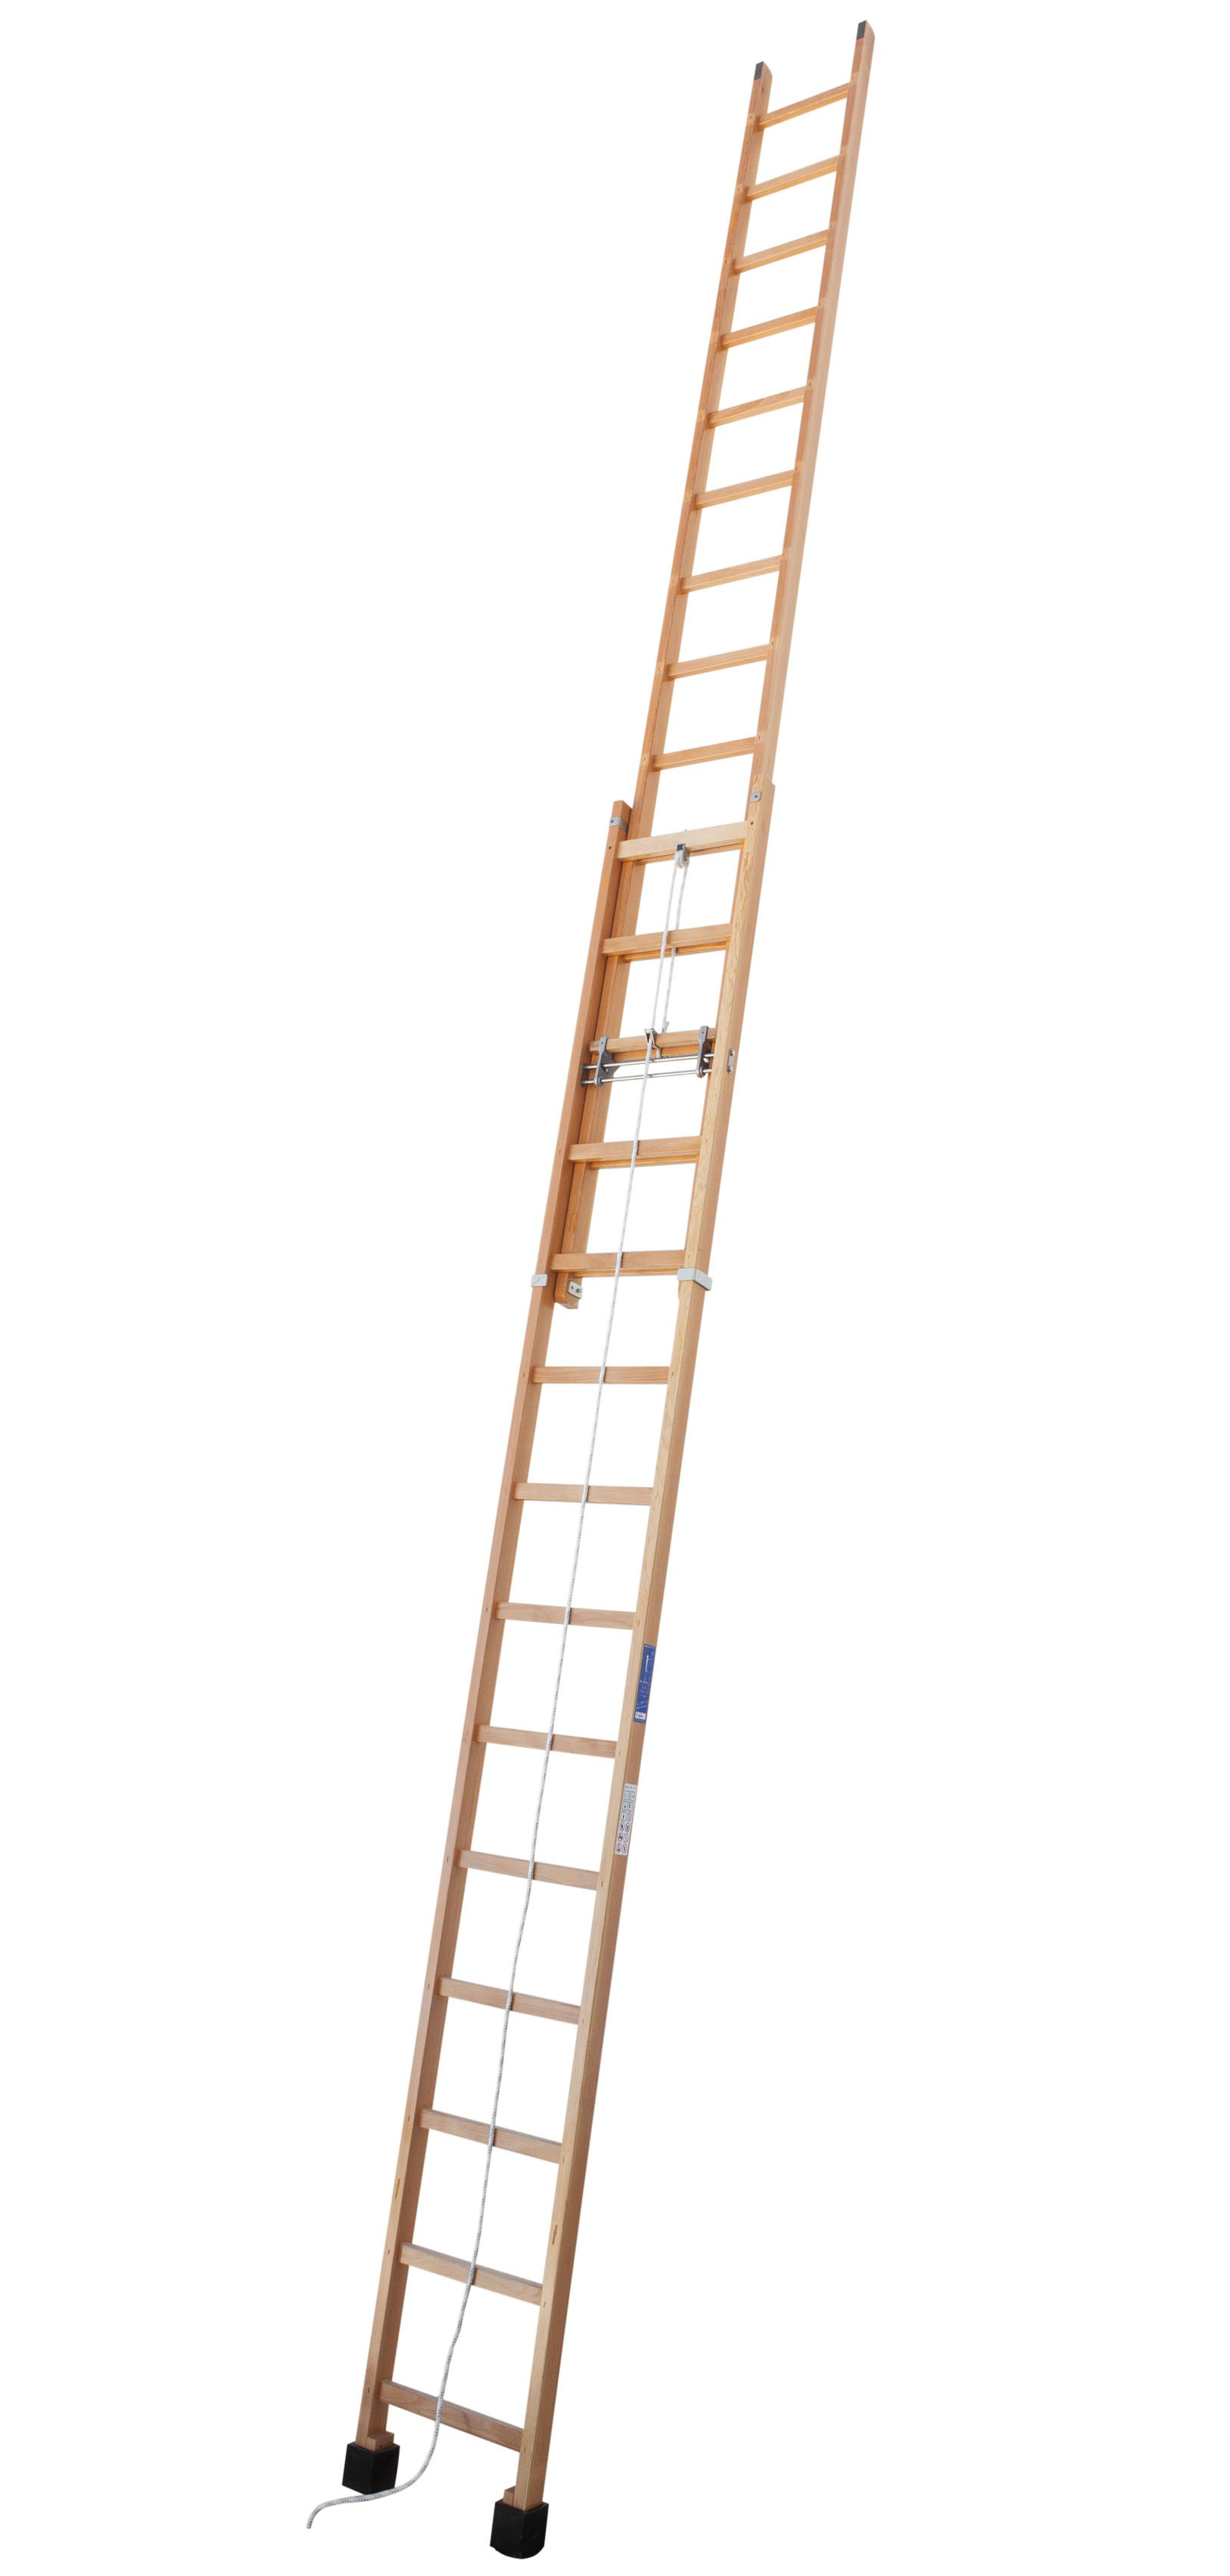 Rope-operated Timber Extension Ladder